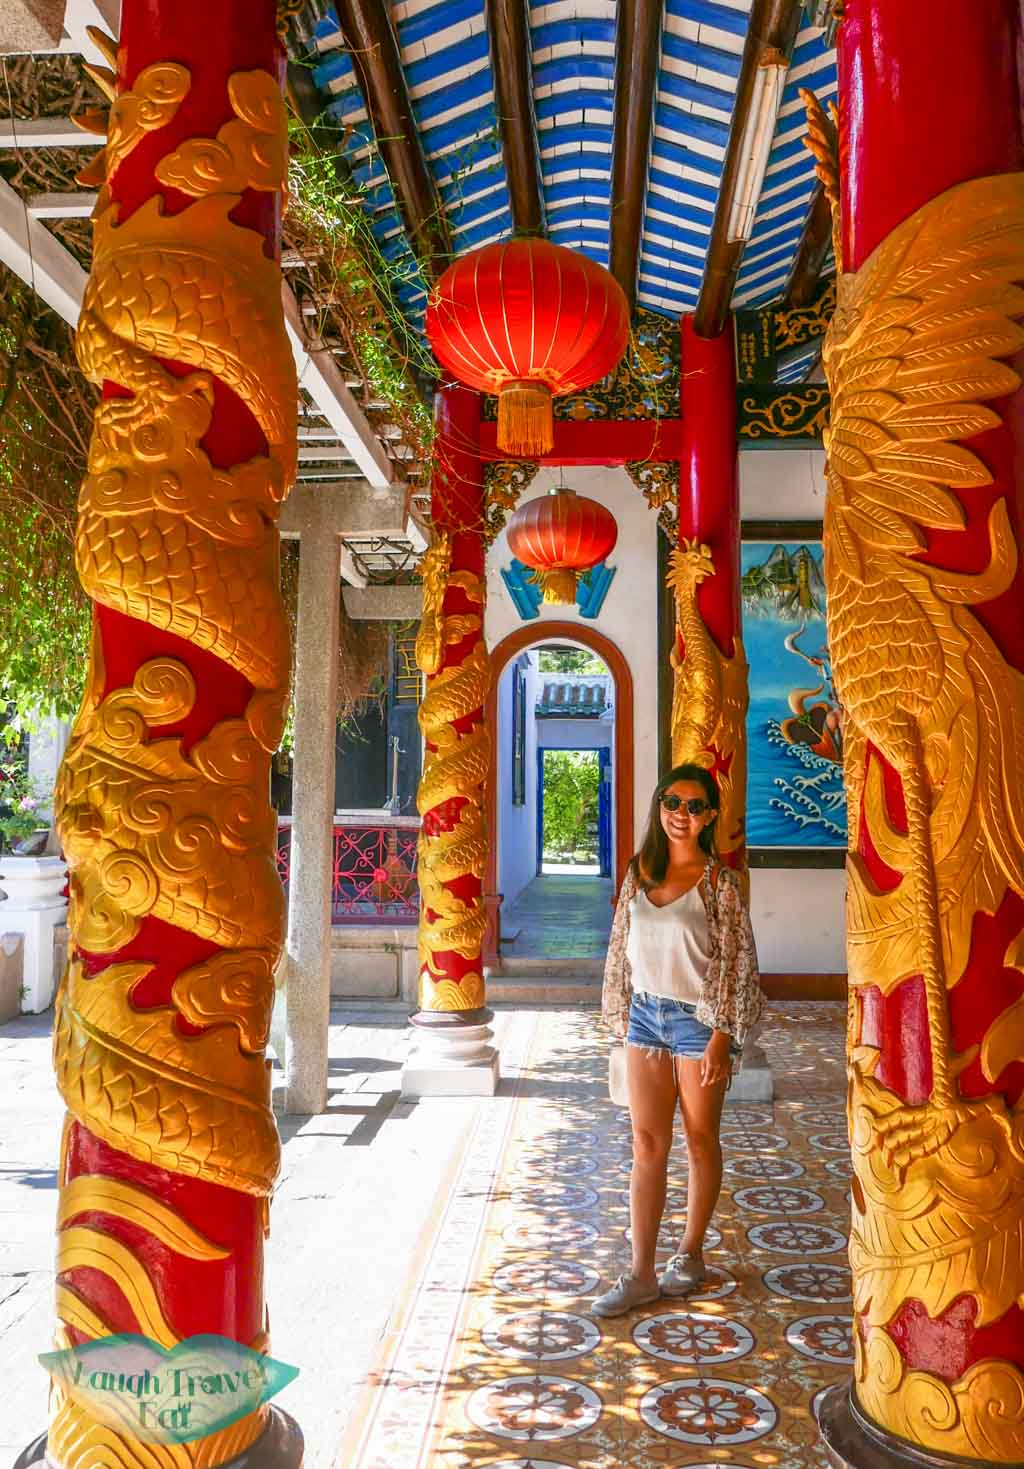 dragon pillars, Quang Trieu Assembly Hall, Hoi An, Vietnam - Laugh Travel Eat